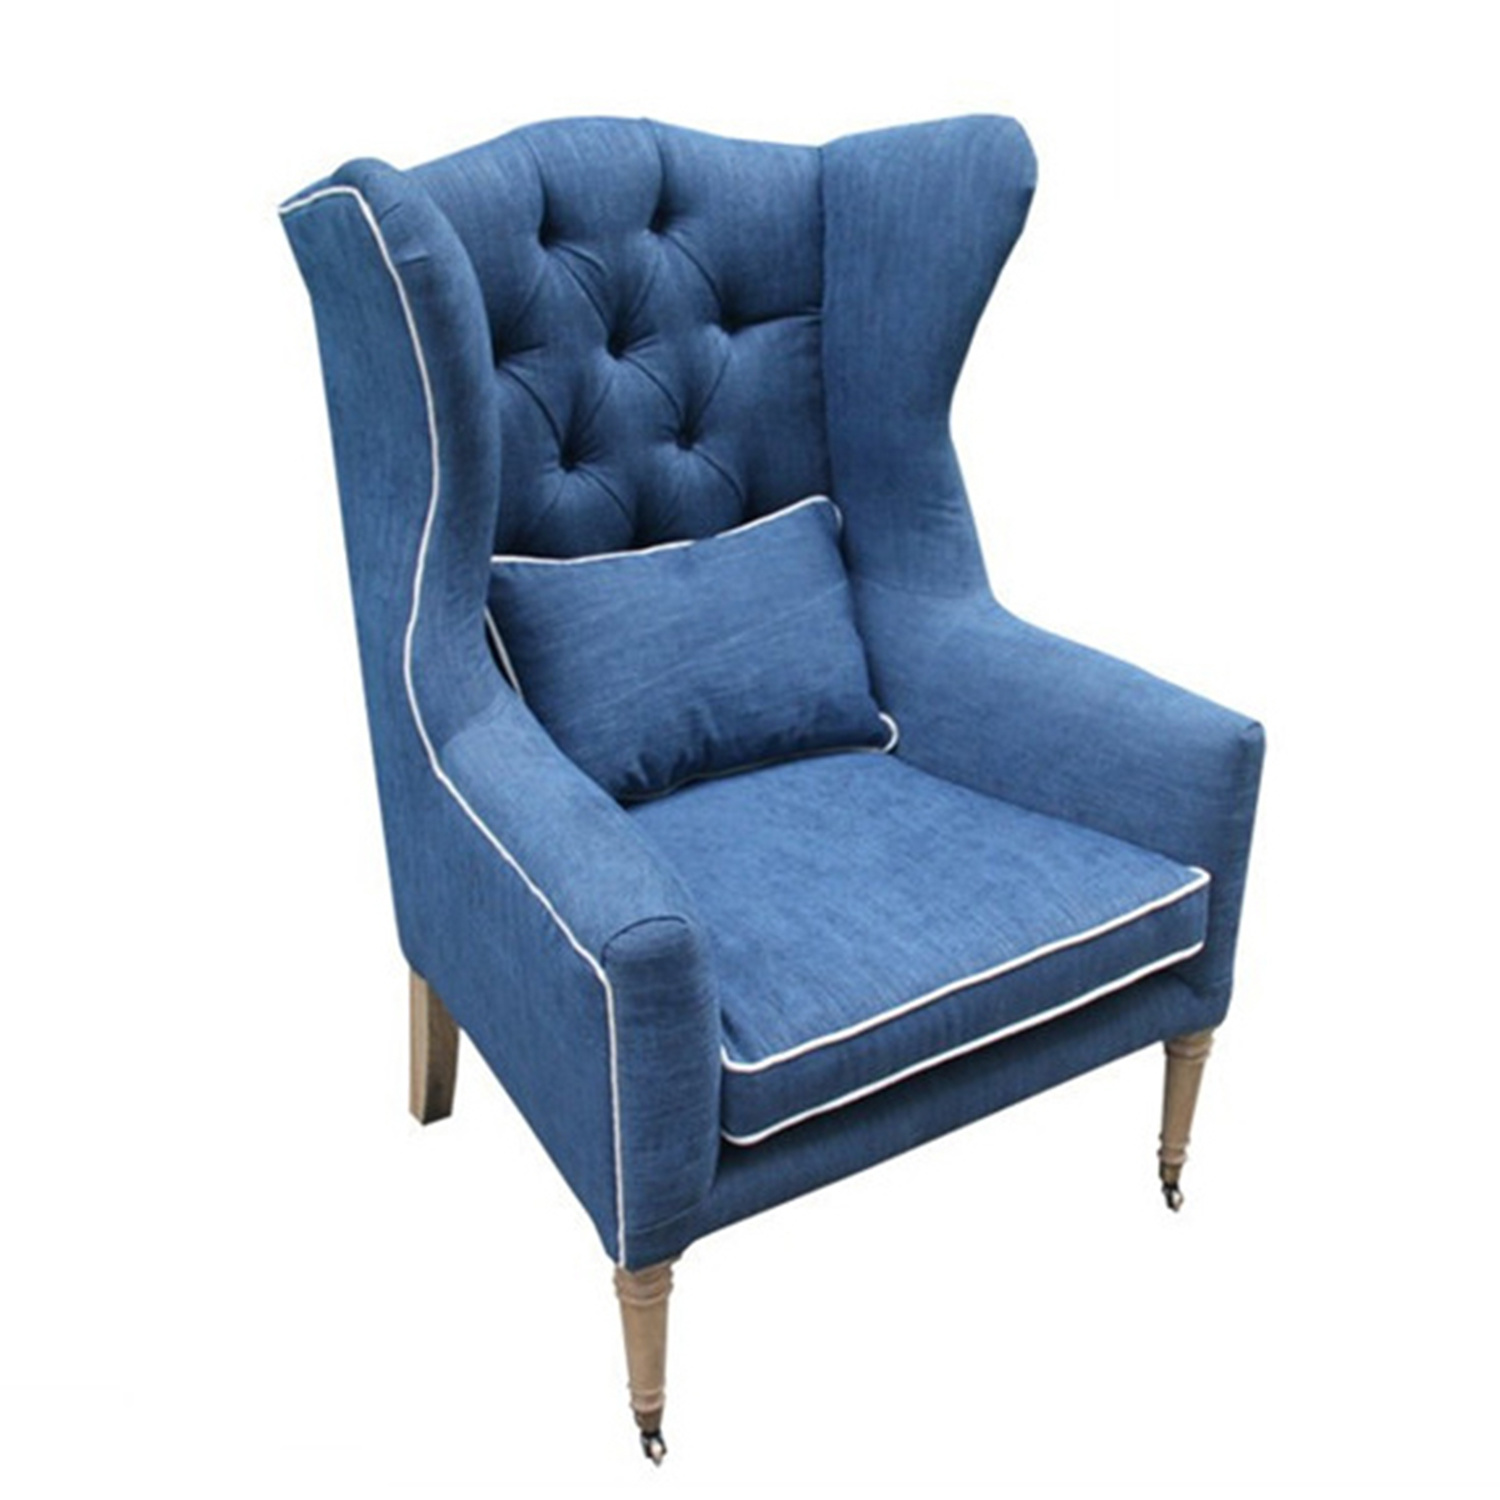 [Hot Item] Navy Blue Tufted Linen Living Room Chair Furniture